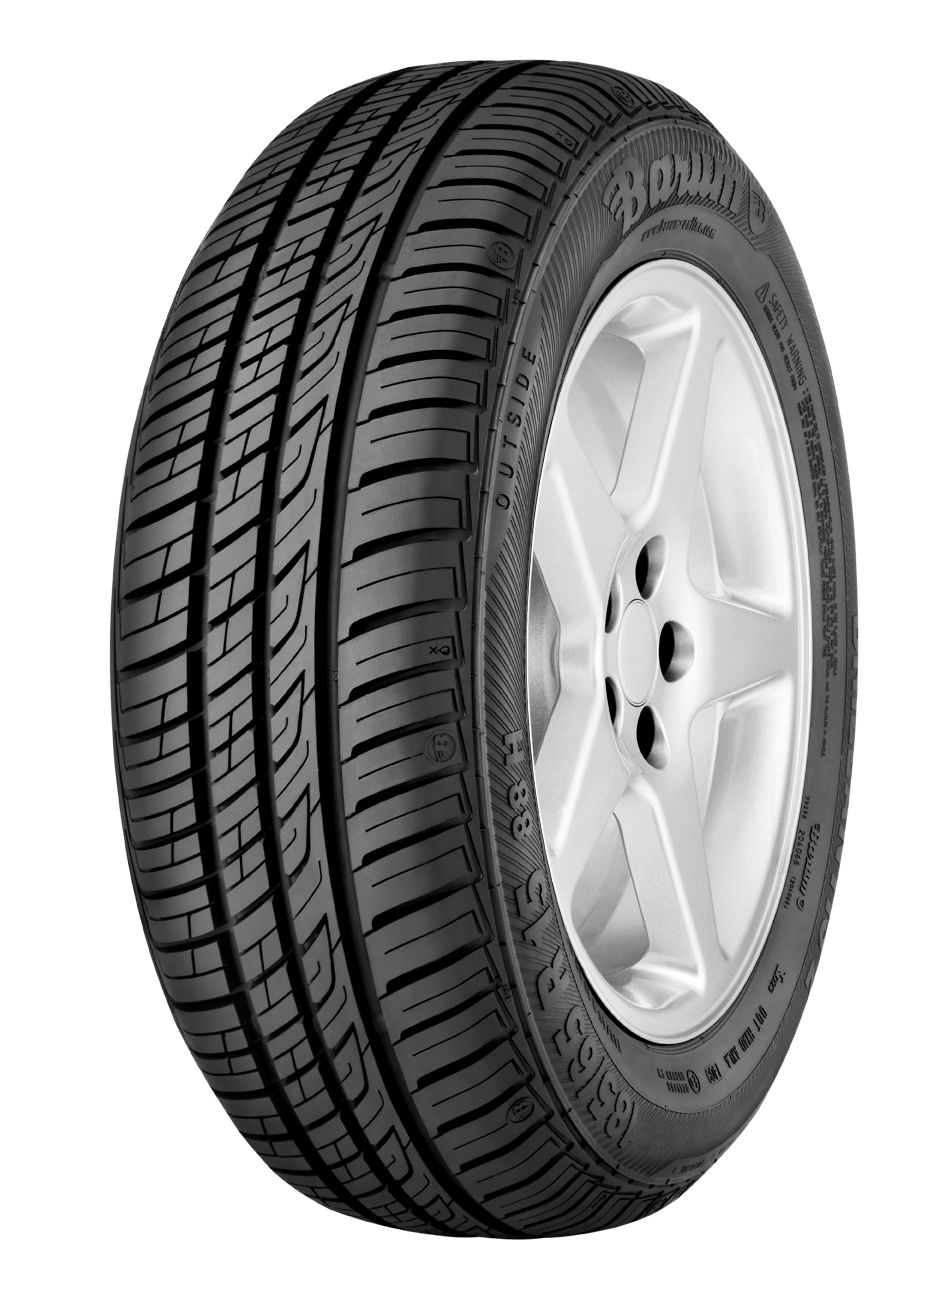 165/70 R13 Barum Brillantis 2 79 T